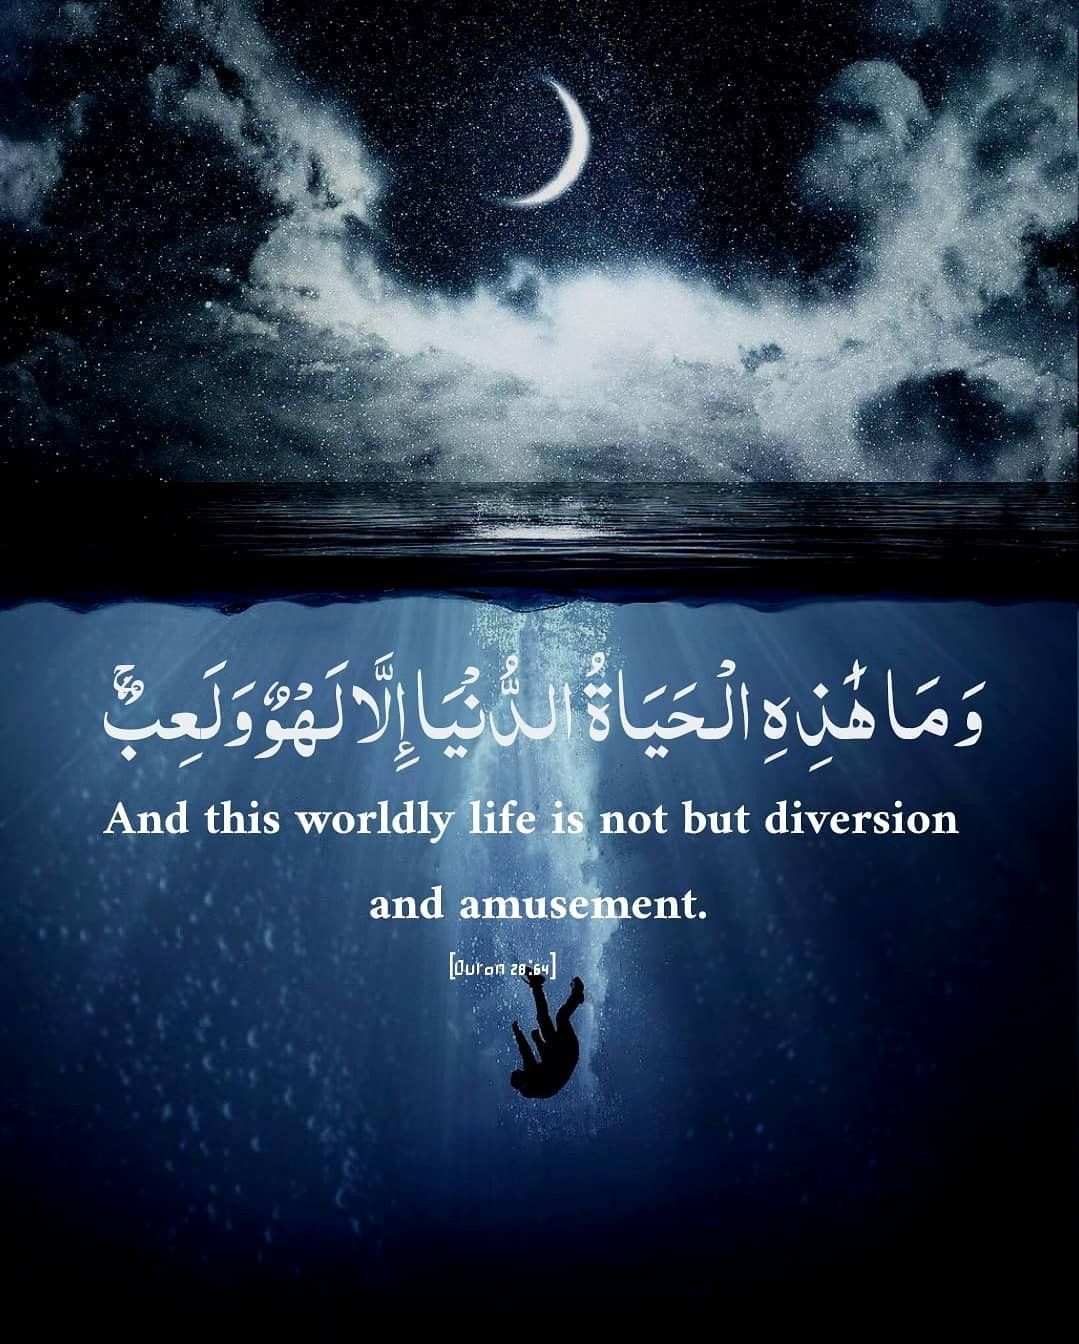 Pin By Marie On Islam The Way Of Life Quran Quotes Arabic Quotes With Translation Islamic Quotes